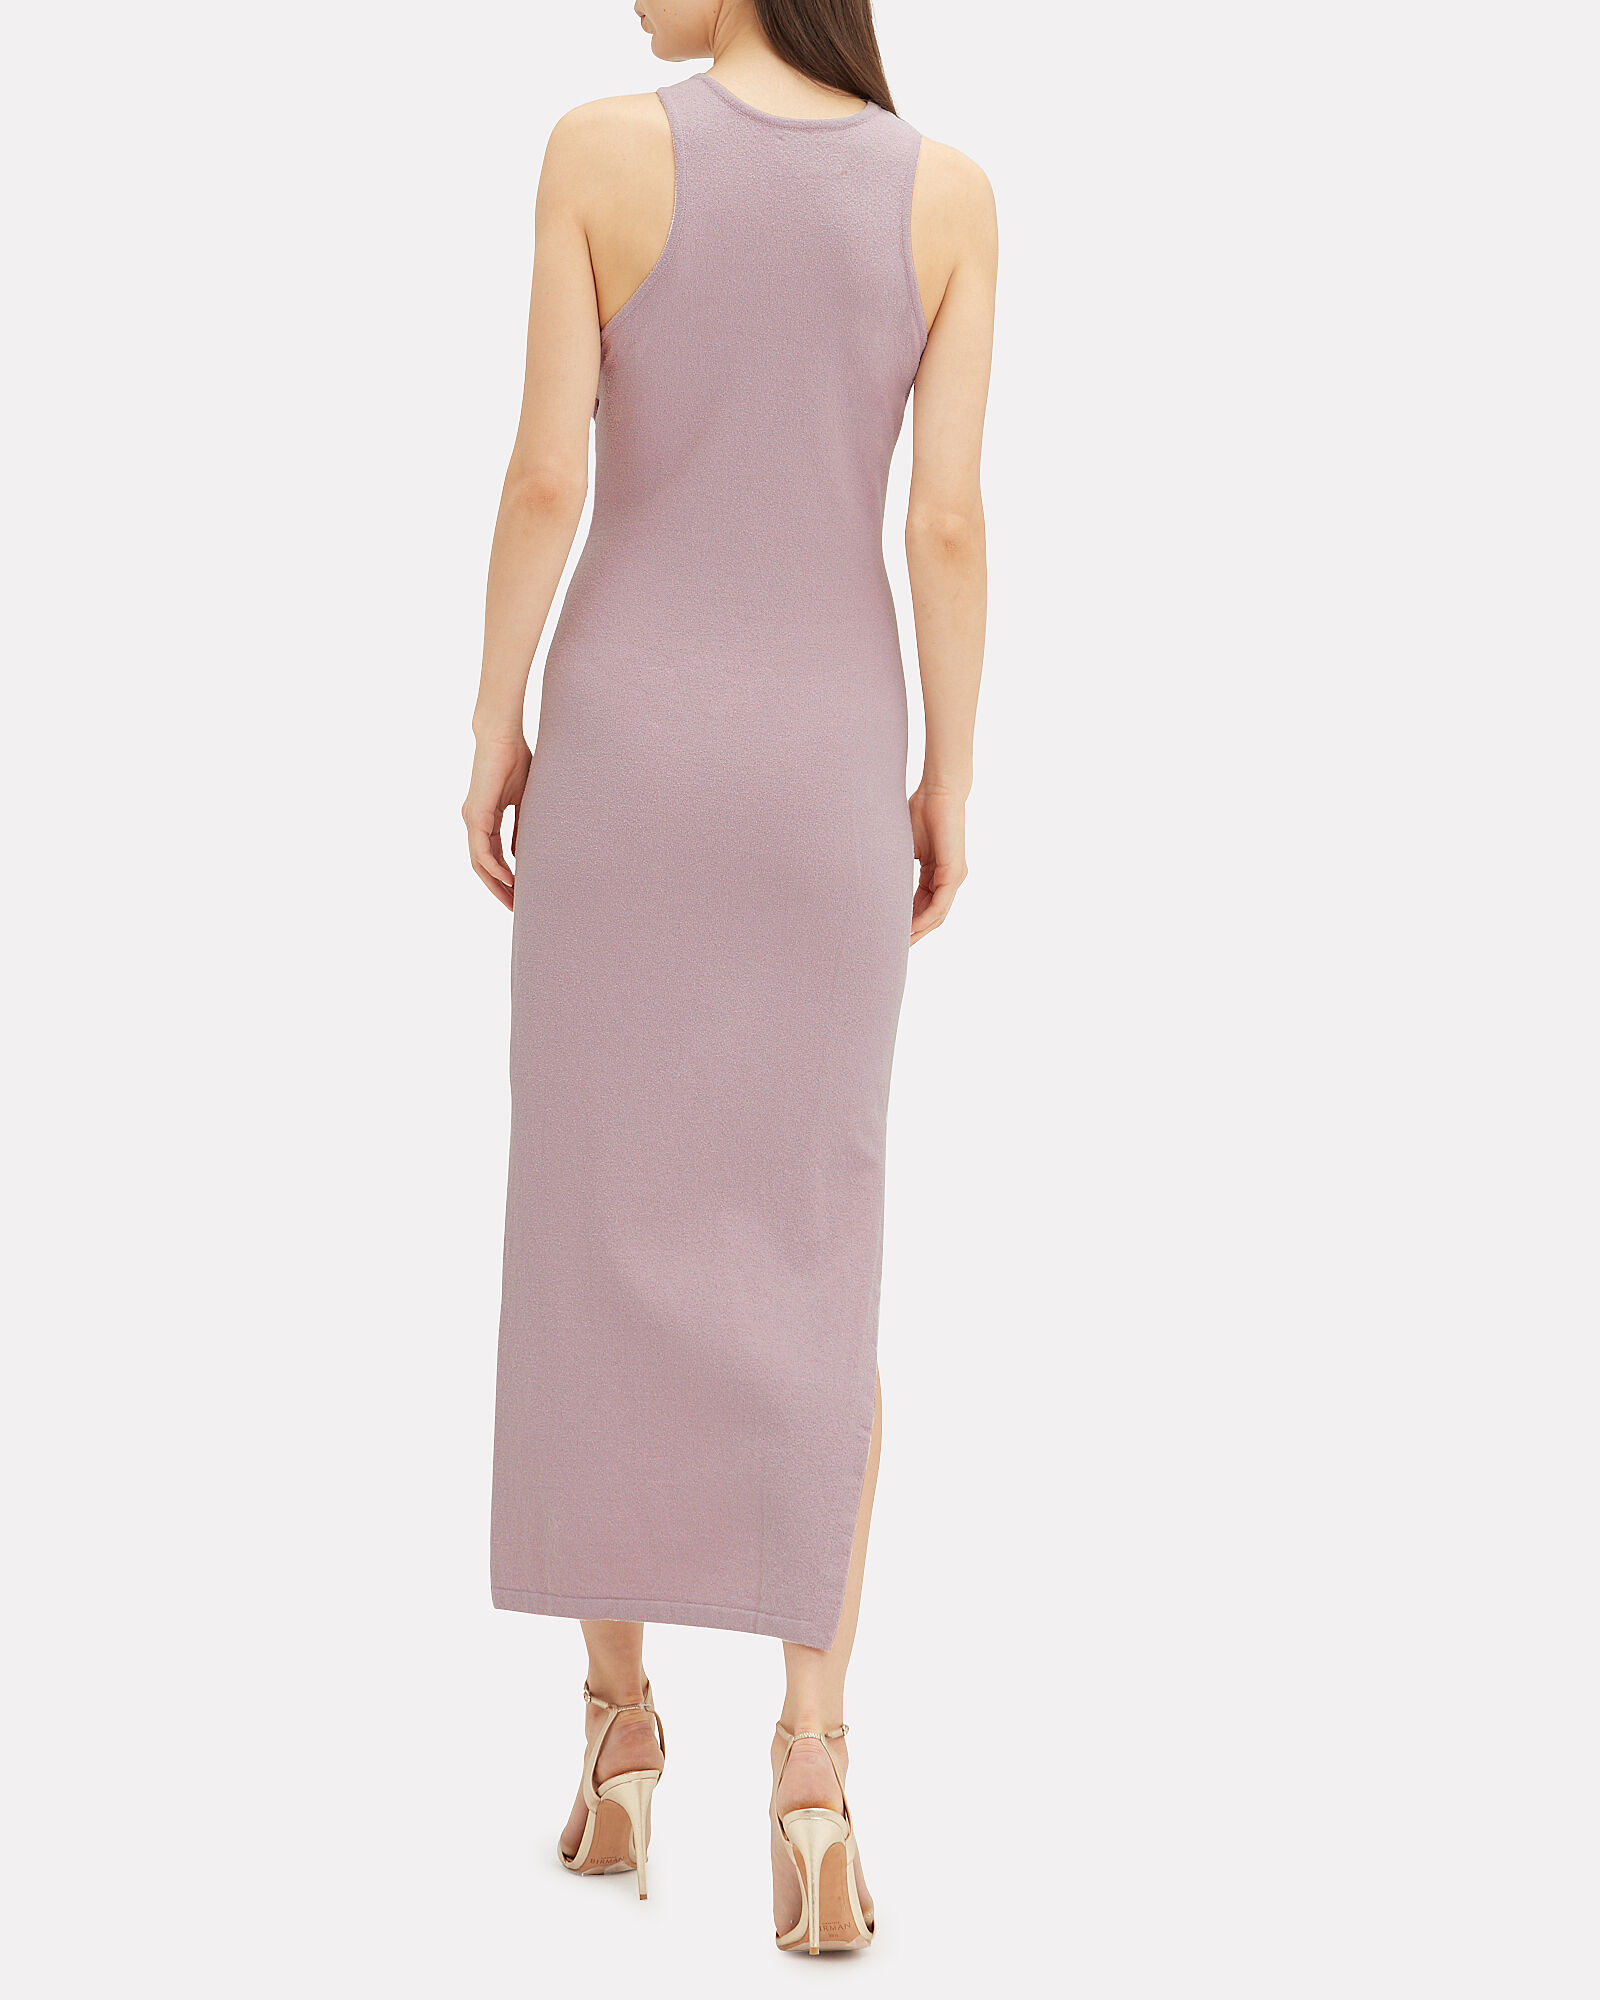 Mame Tie Waist Dress, LILAC, hi-res